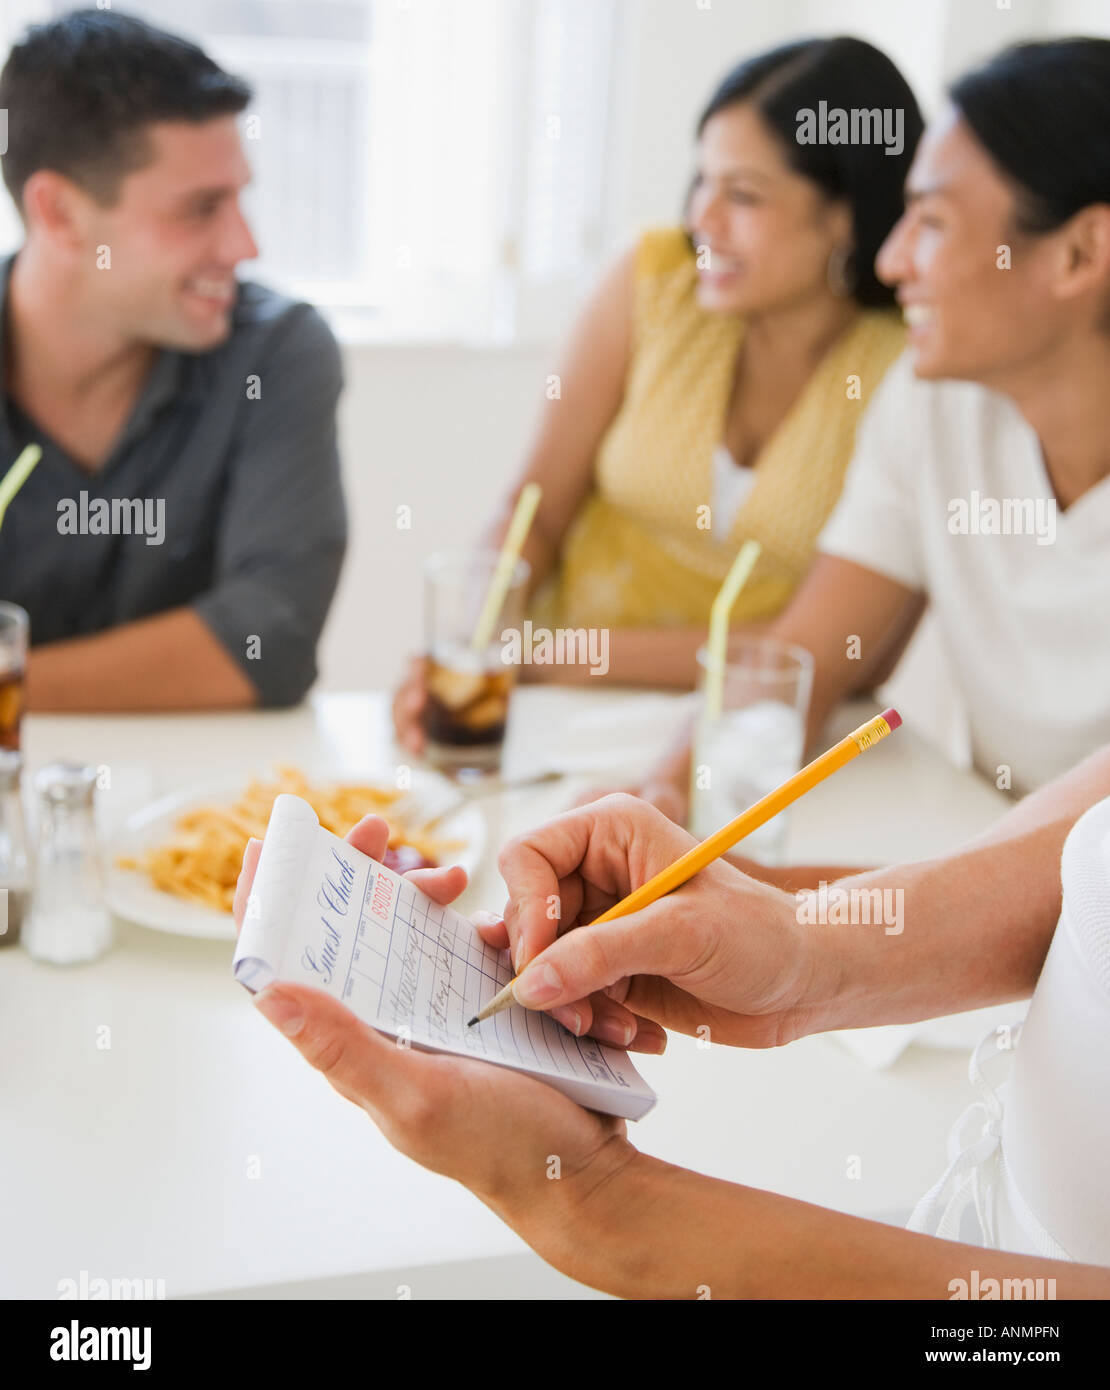 Waitress taking order at diner - Stock Image